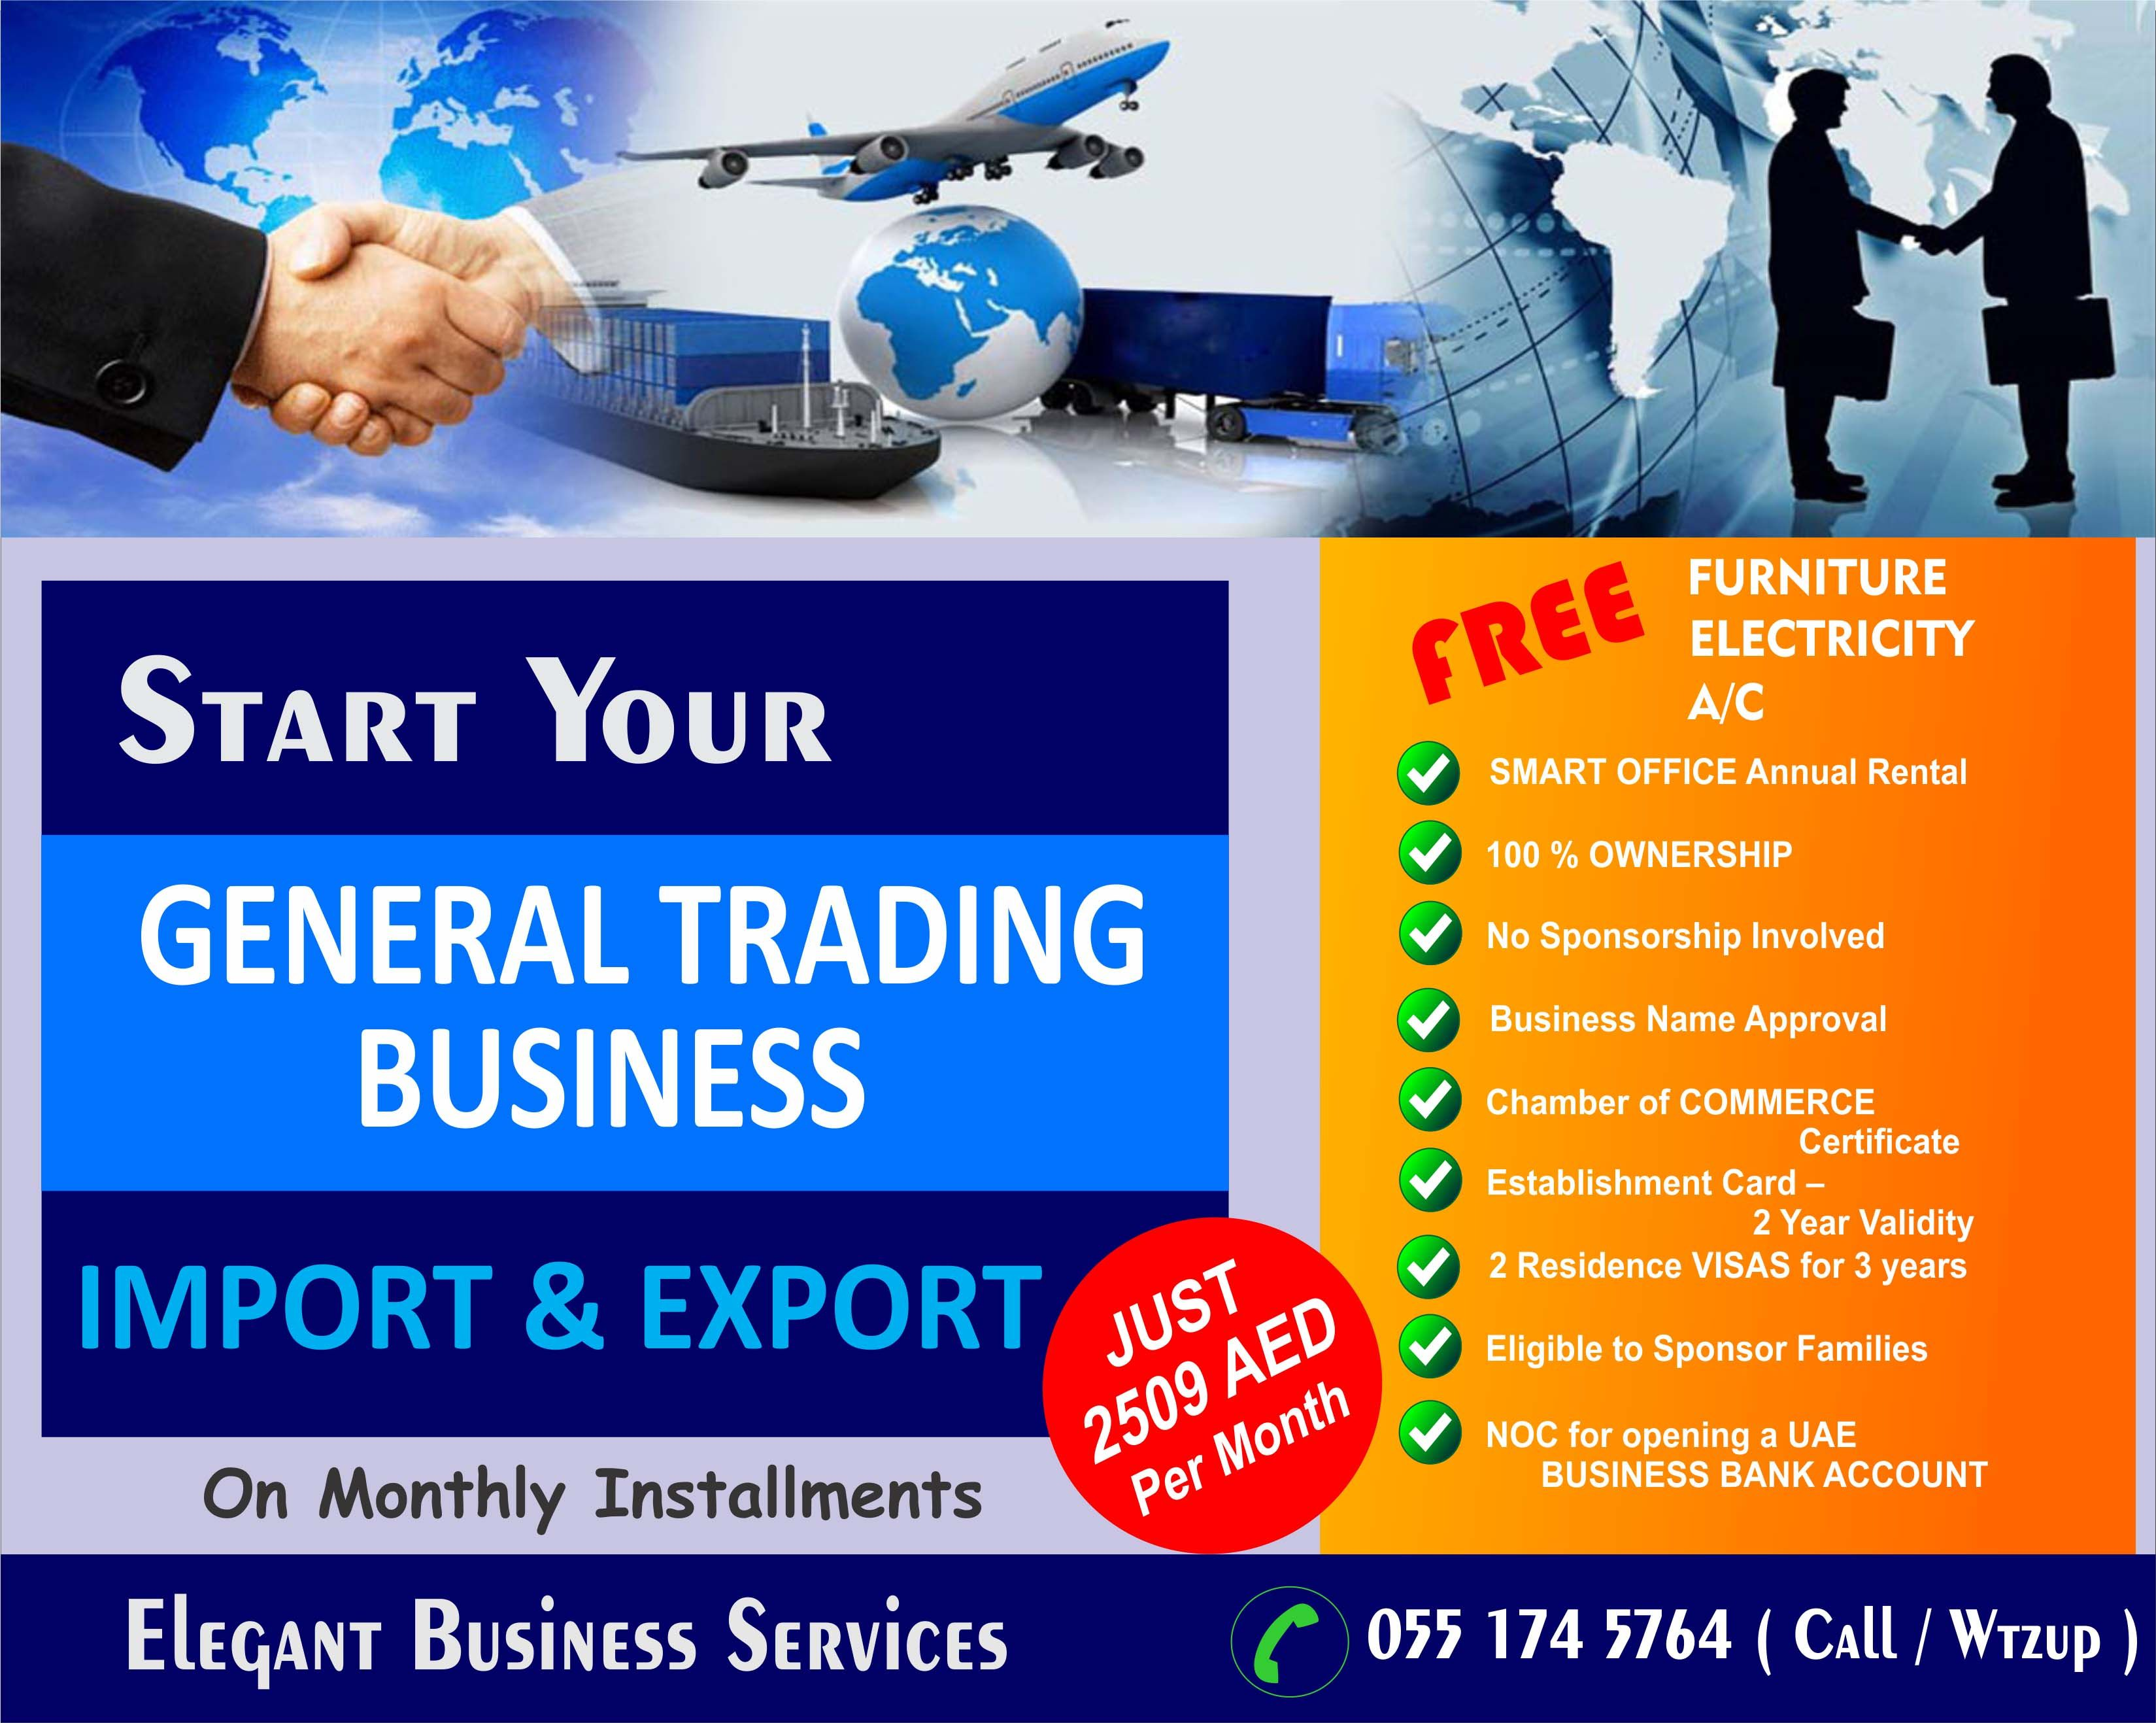 Start Your General Trading Business On Monthly Installment In Uae